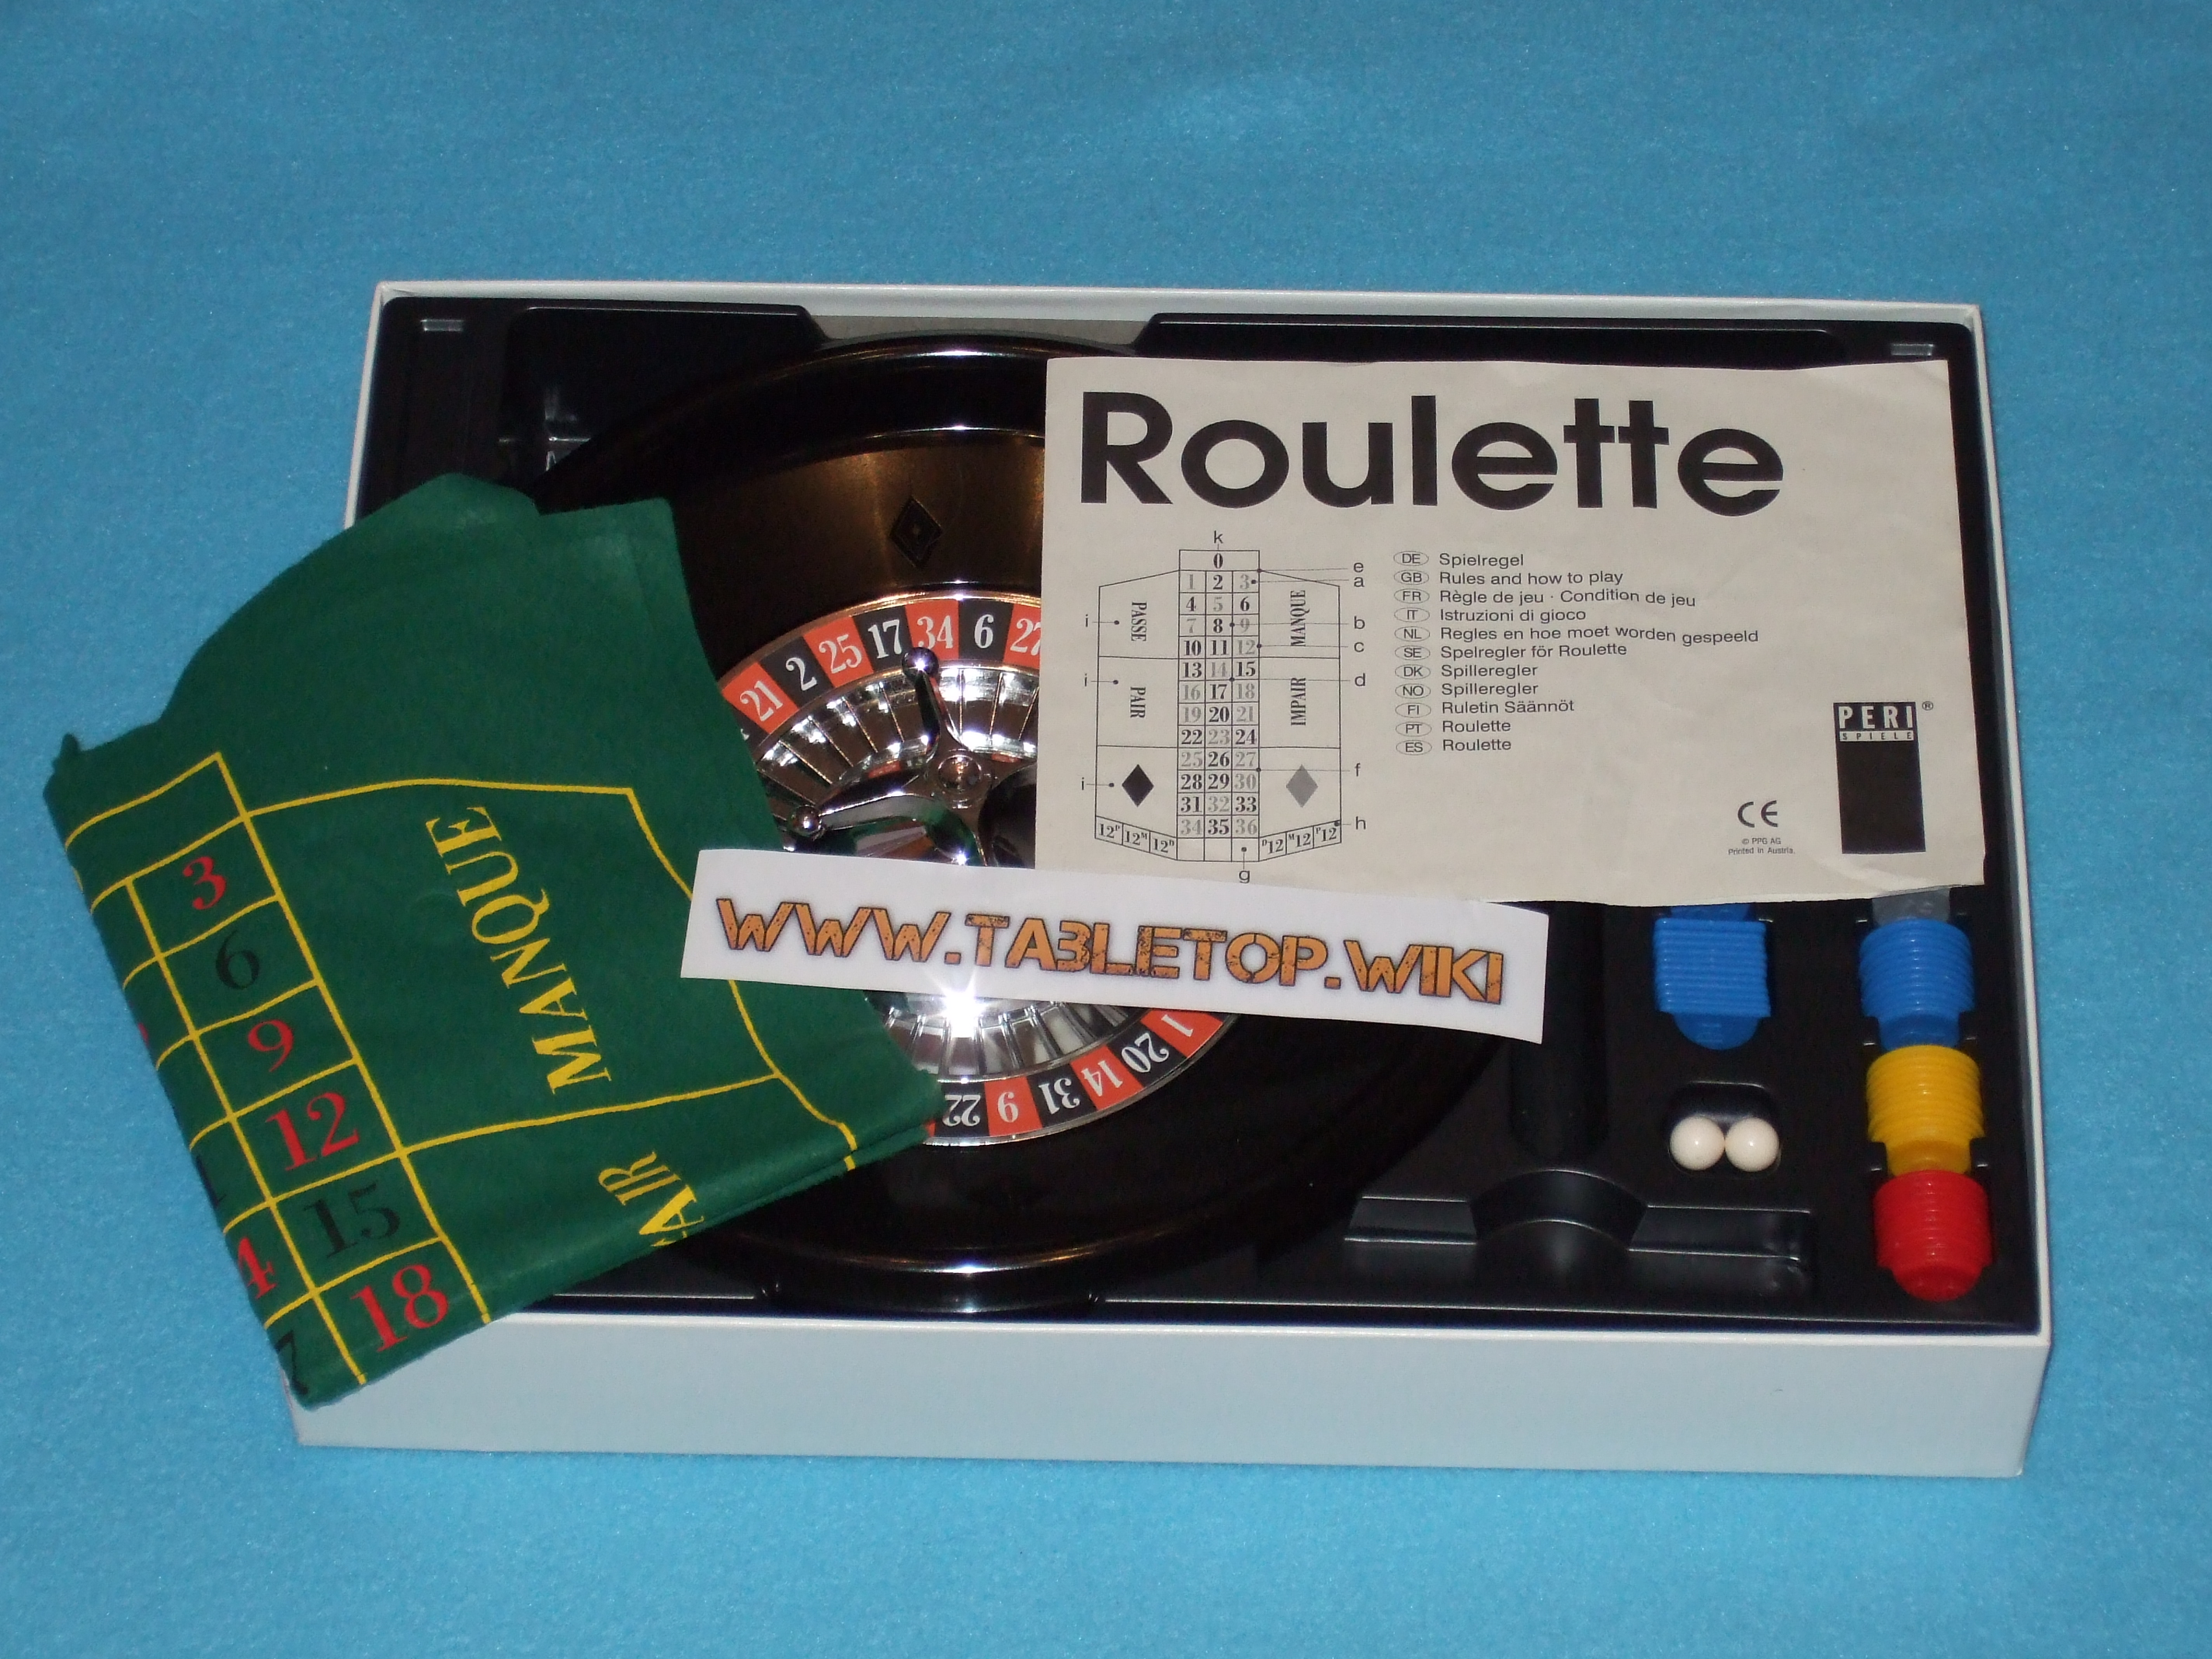 Roulette Anleitung